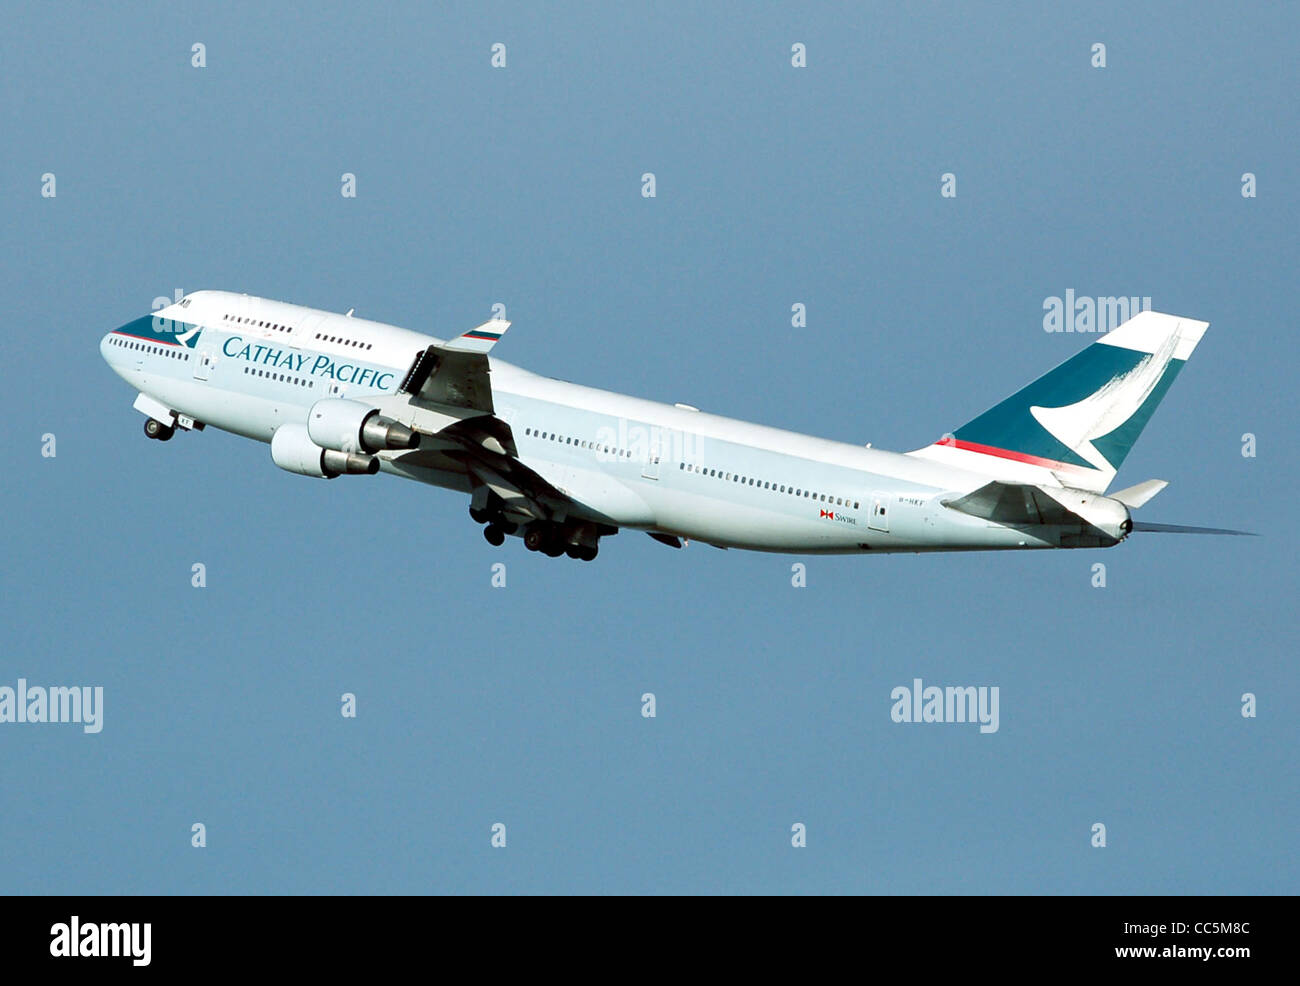 B 747 Stock Photos Images Page 3 Alamy Boeing 400 Wiring Diagram Cathay Pacific Airways Hkf Takes Off From London